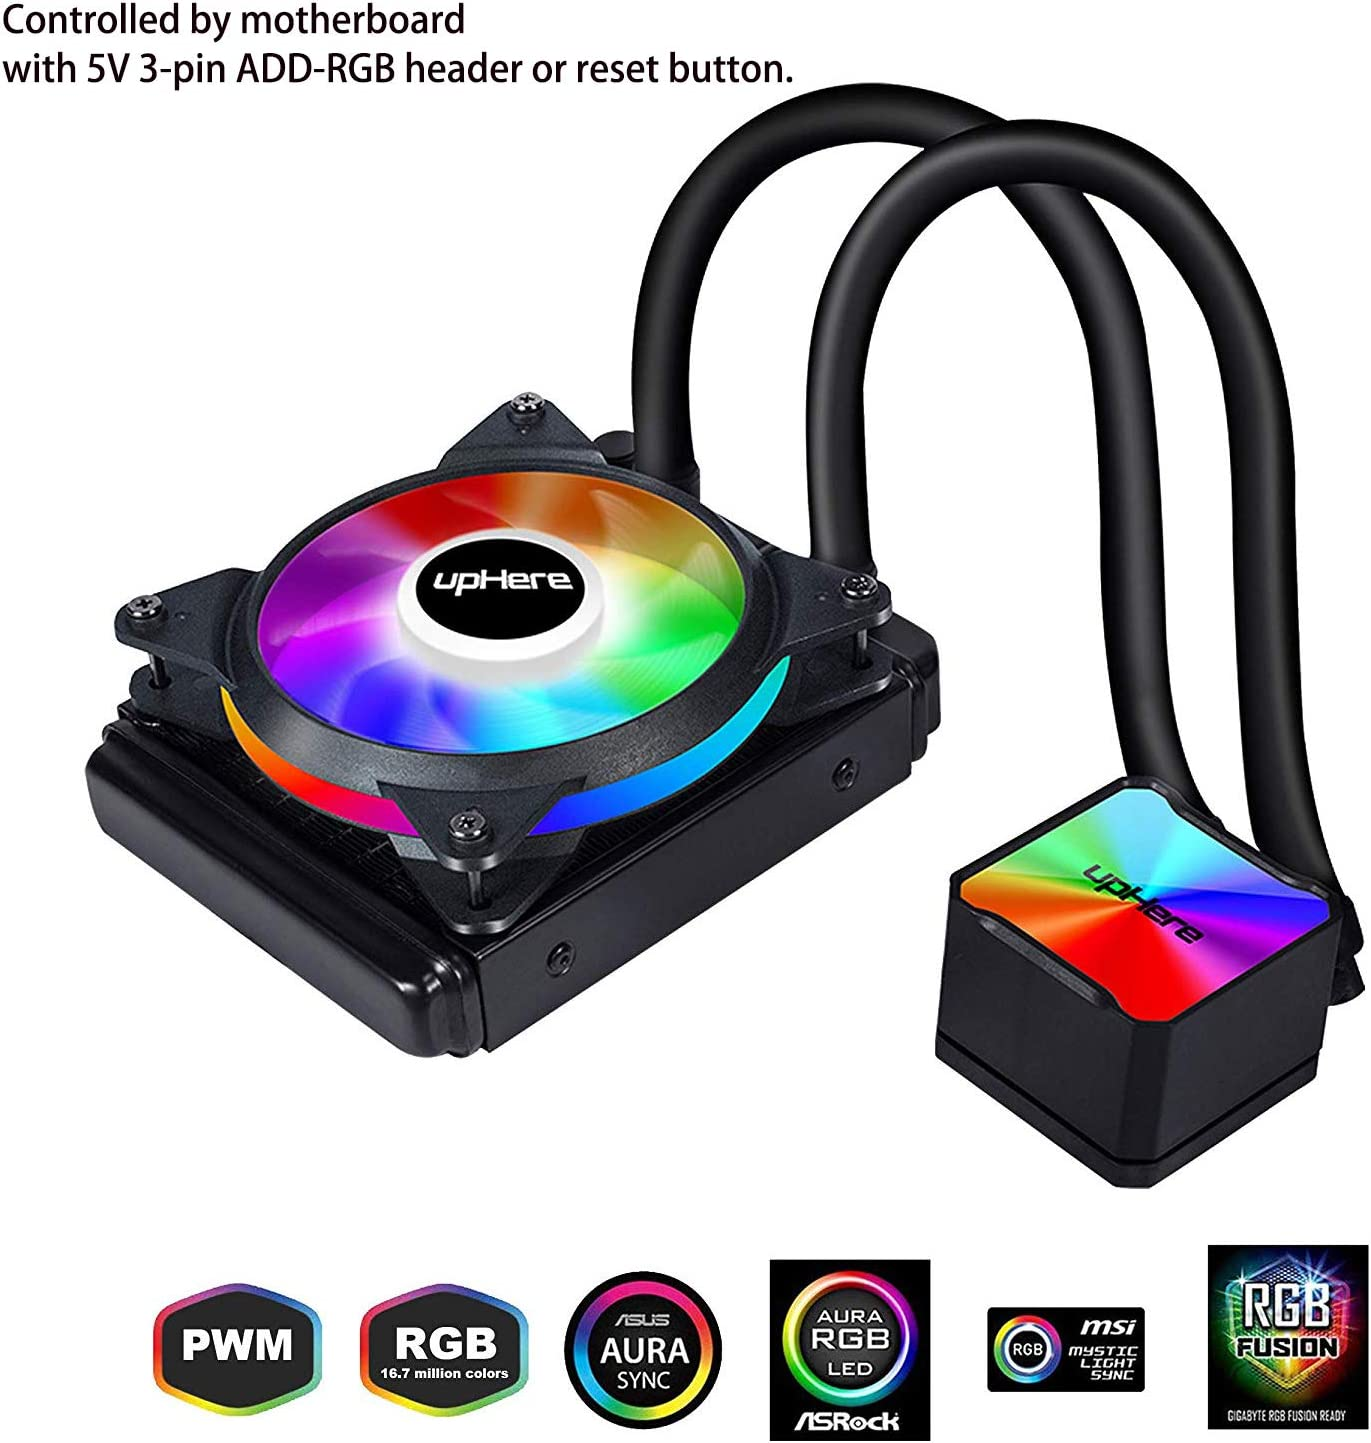 upHere Liquid CPU Cooler 120mm,SYNC RGB Fan,120mm PWM Fan,Motherboard Control Supported,Intel and AM4 Compatible,CC120RGB